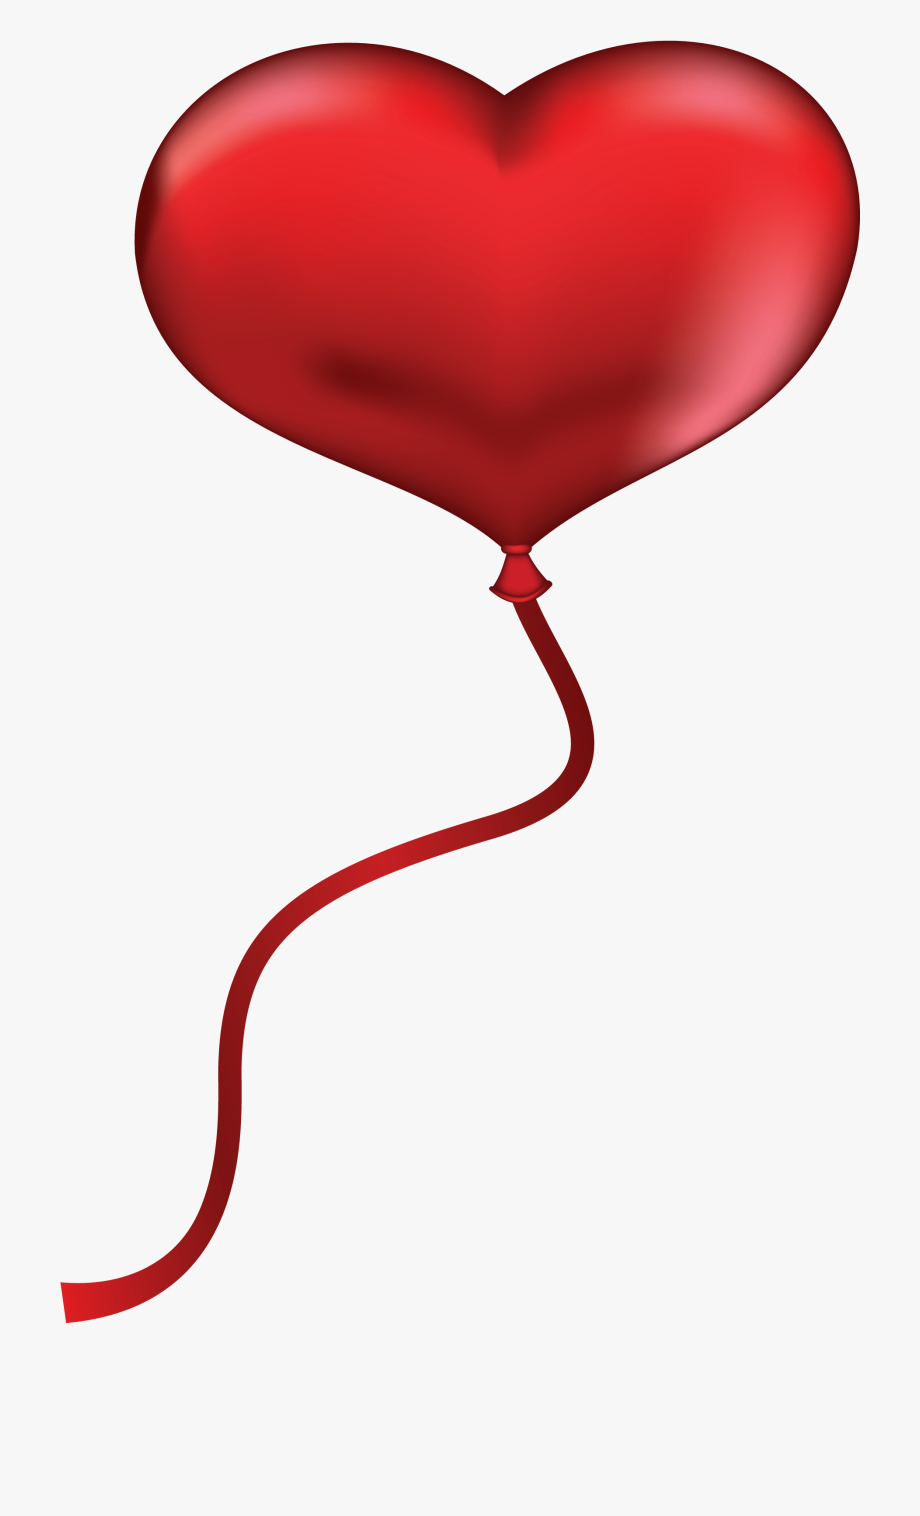 Donut clipart heart. Free party red balloon